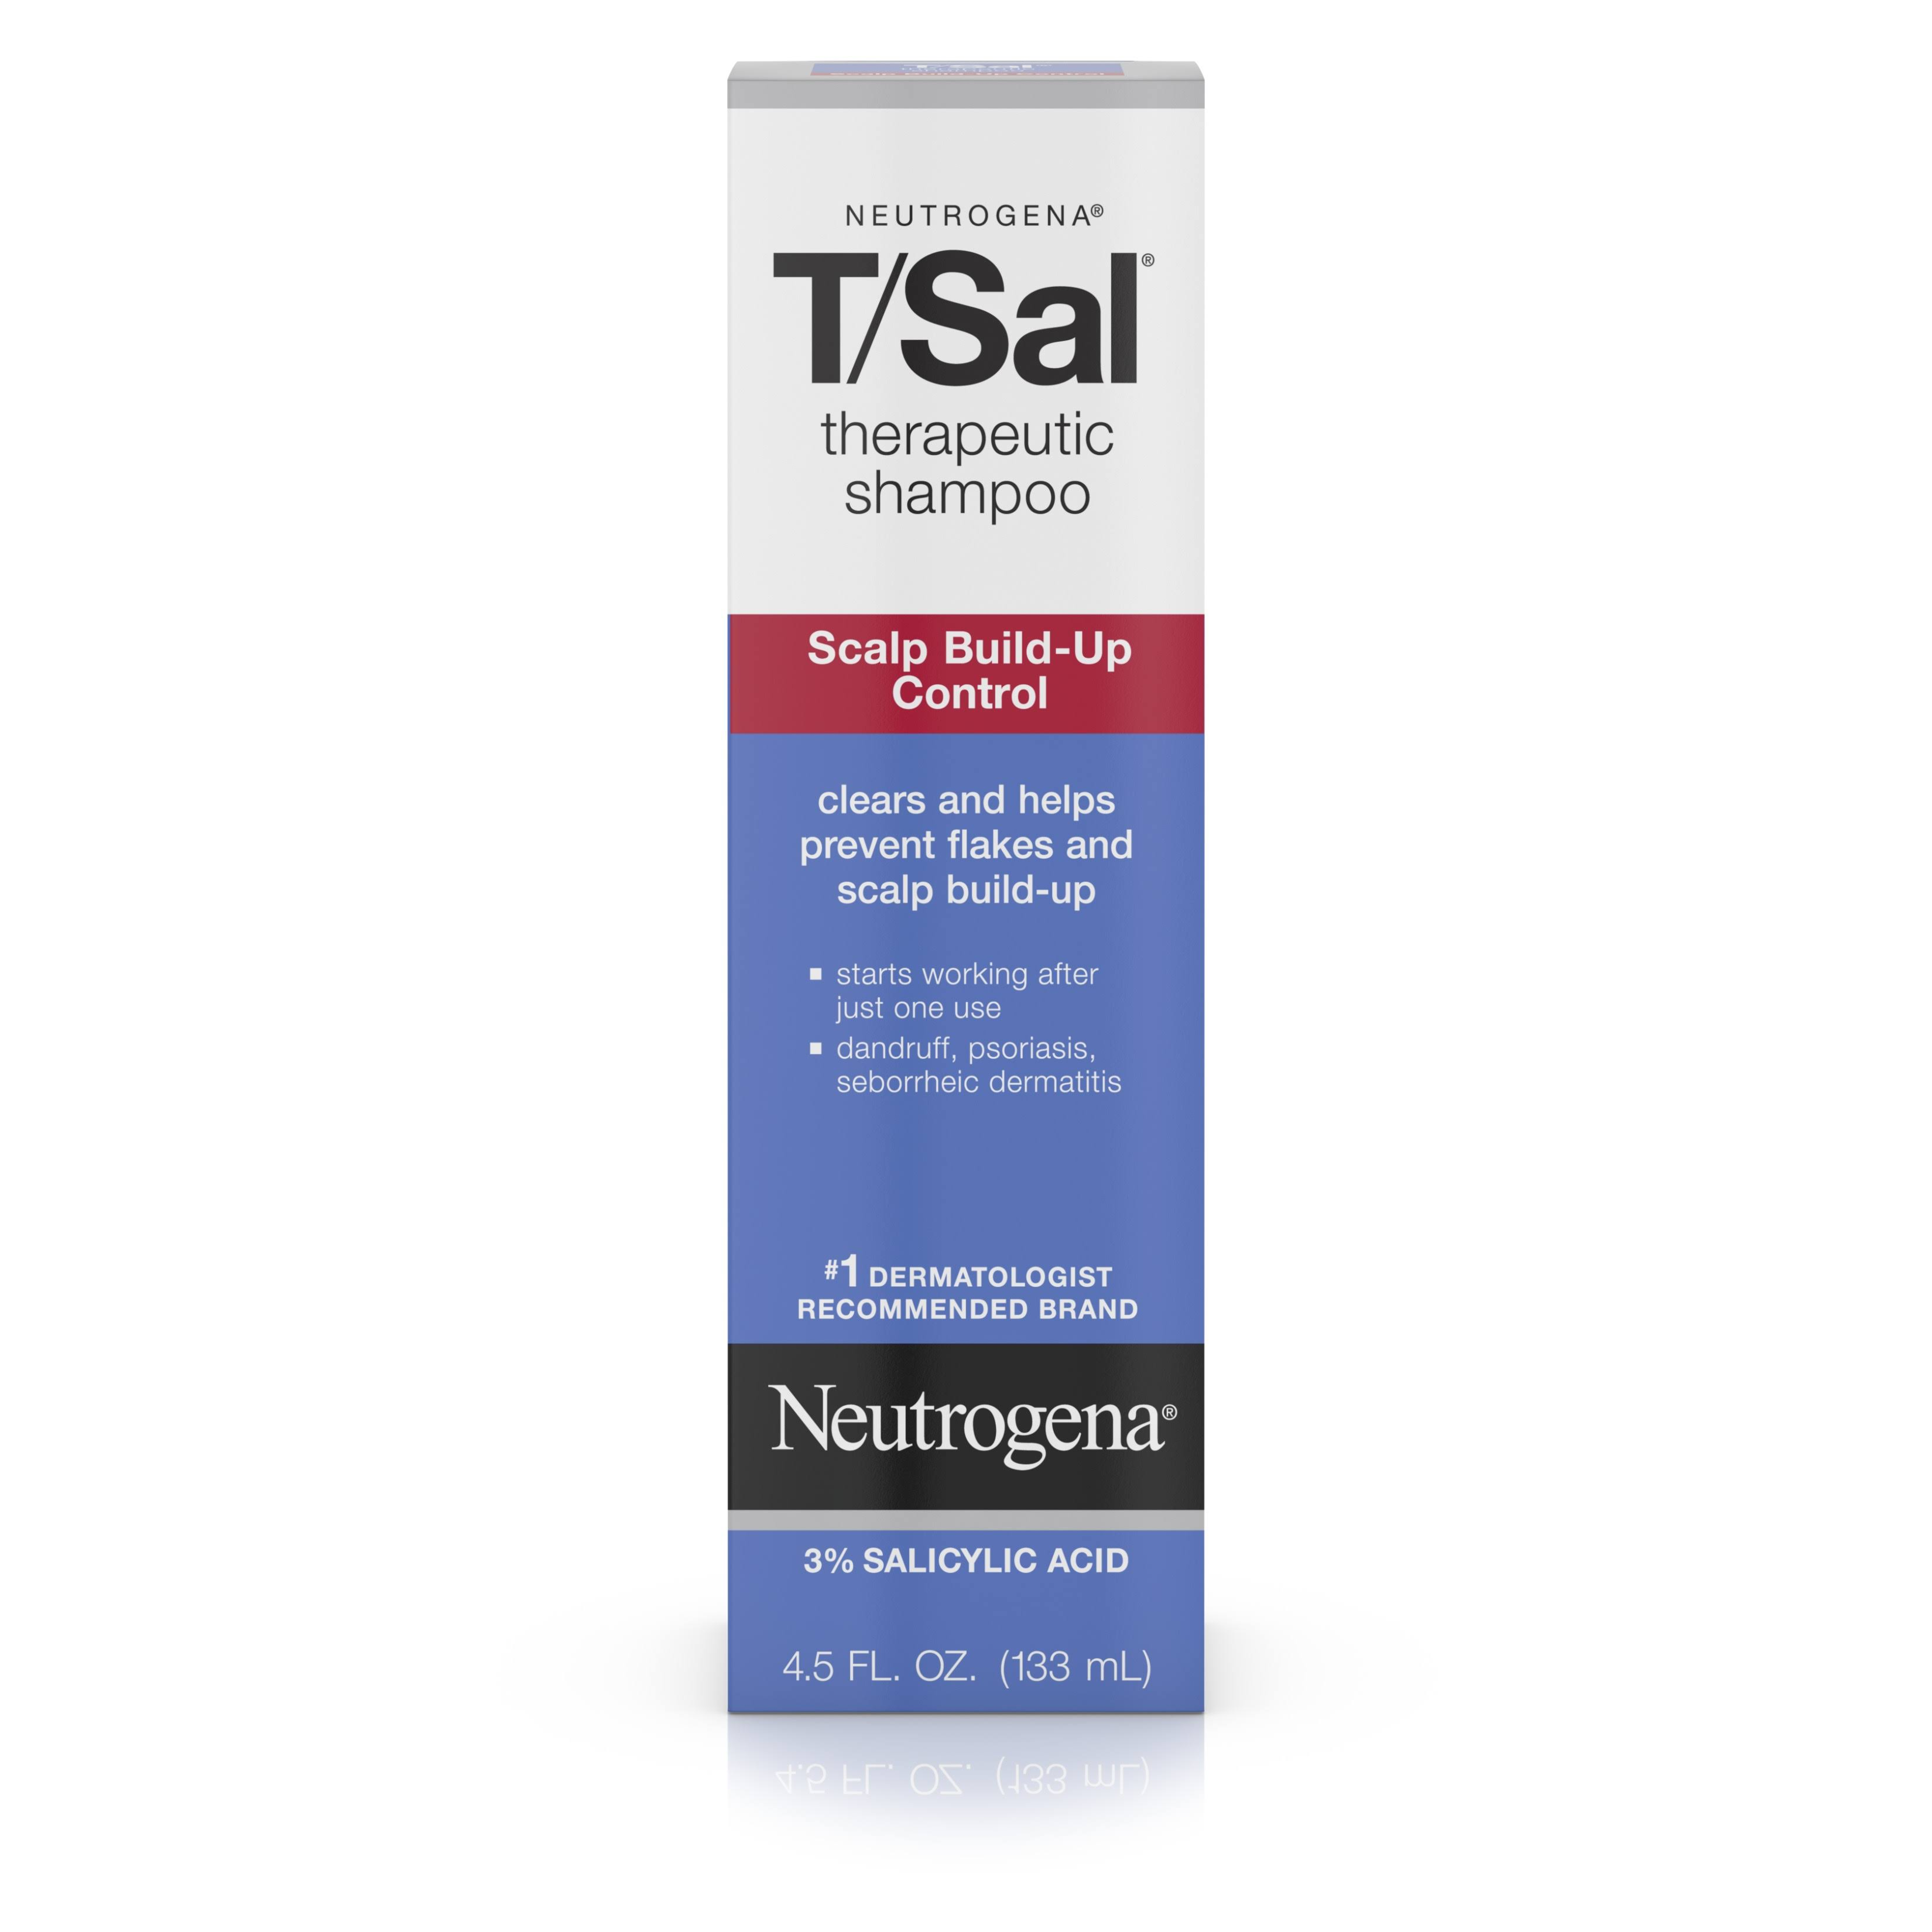 Neutrogena T/Sal Therapeutic Shampoo Scalp Build-Up Control - 133ml